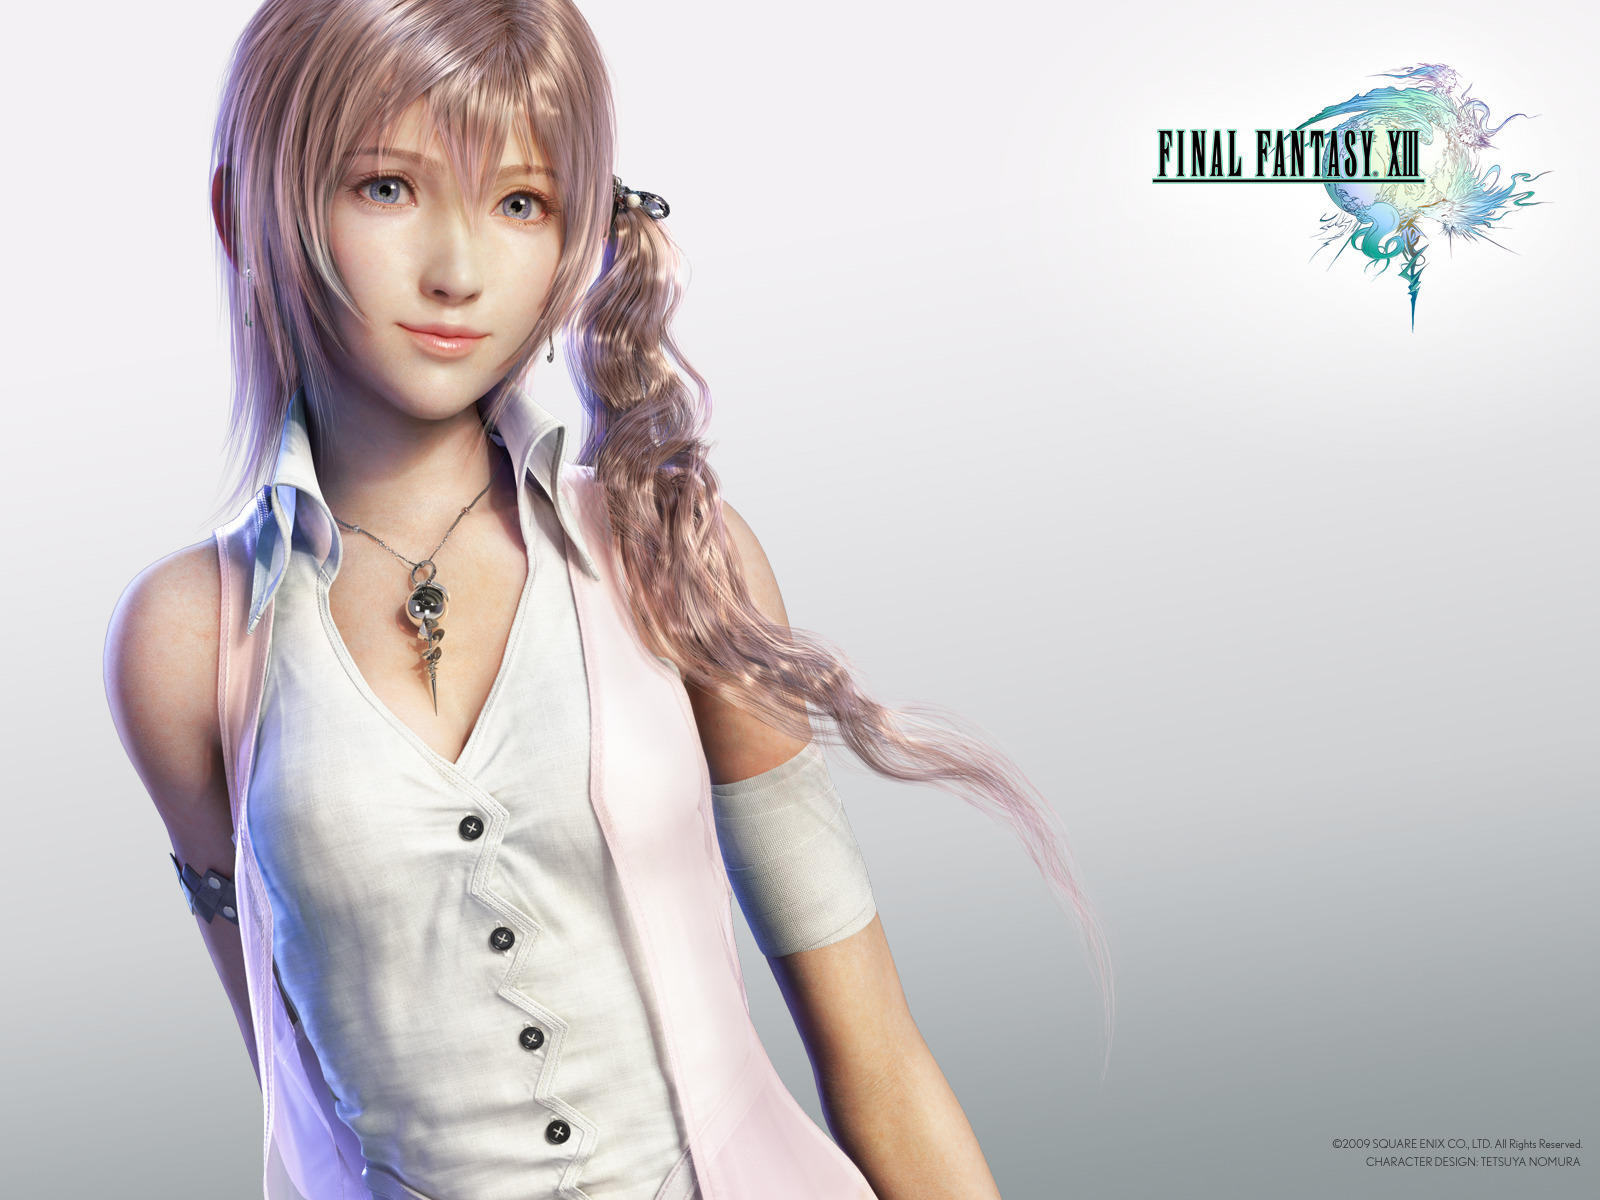 image Serah from final fantasy 3d animated